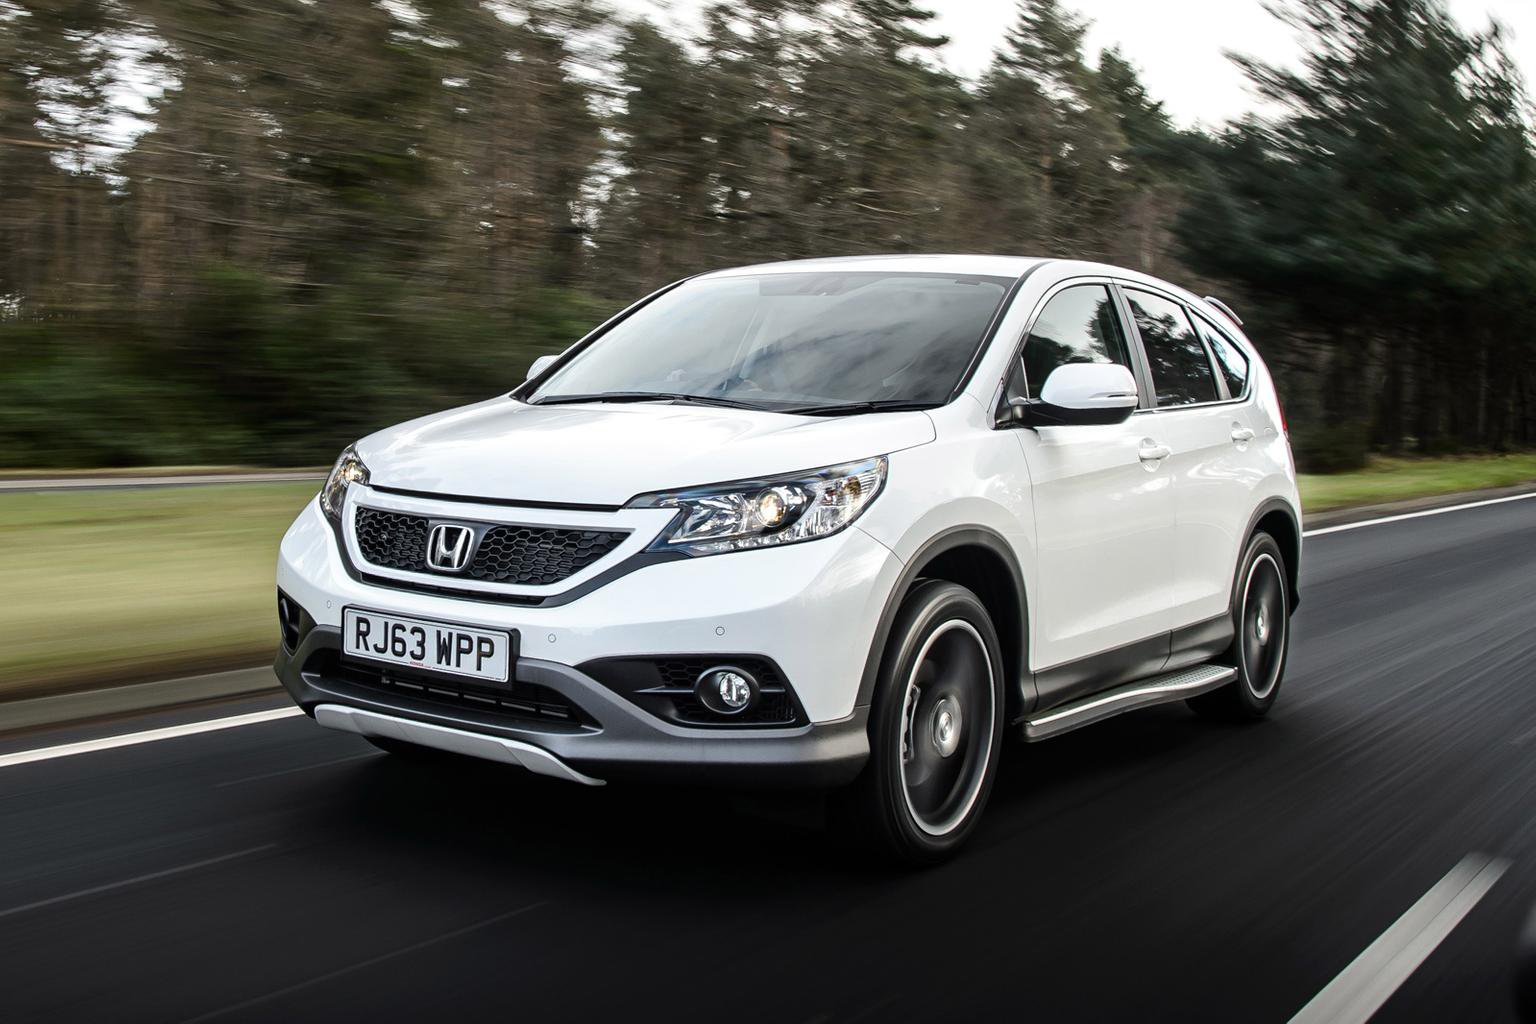 Deal of the day: Honda CR-V